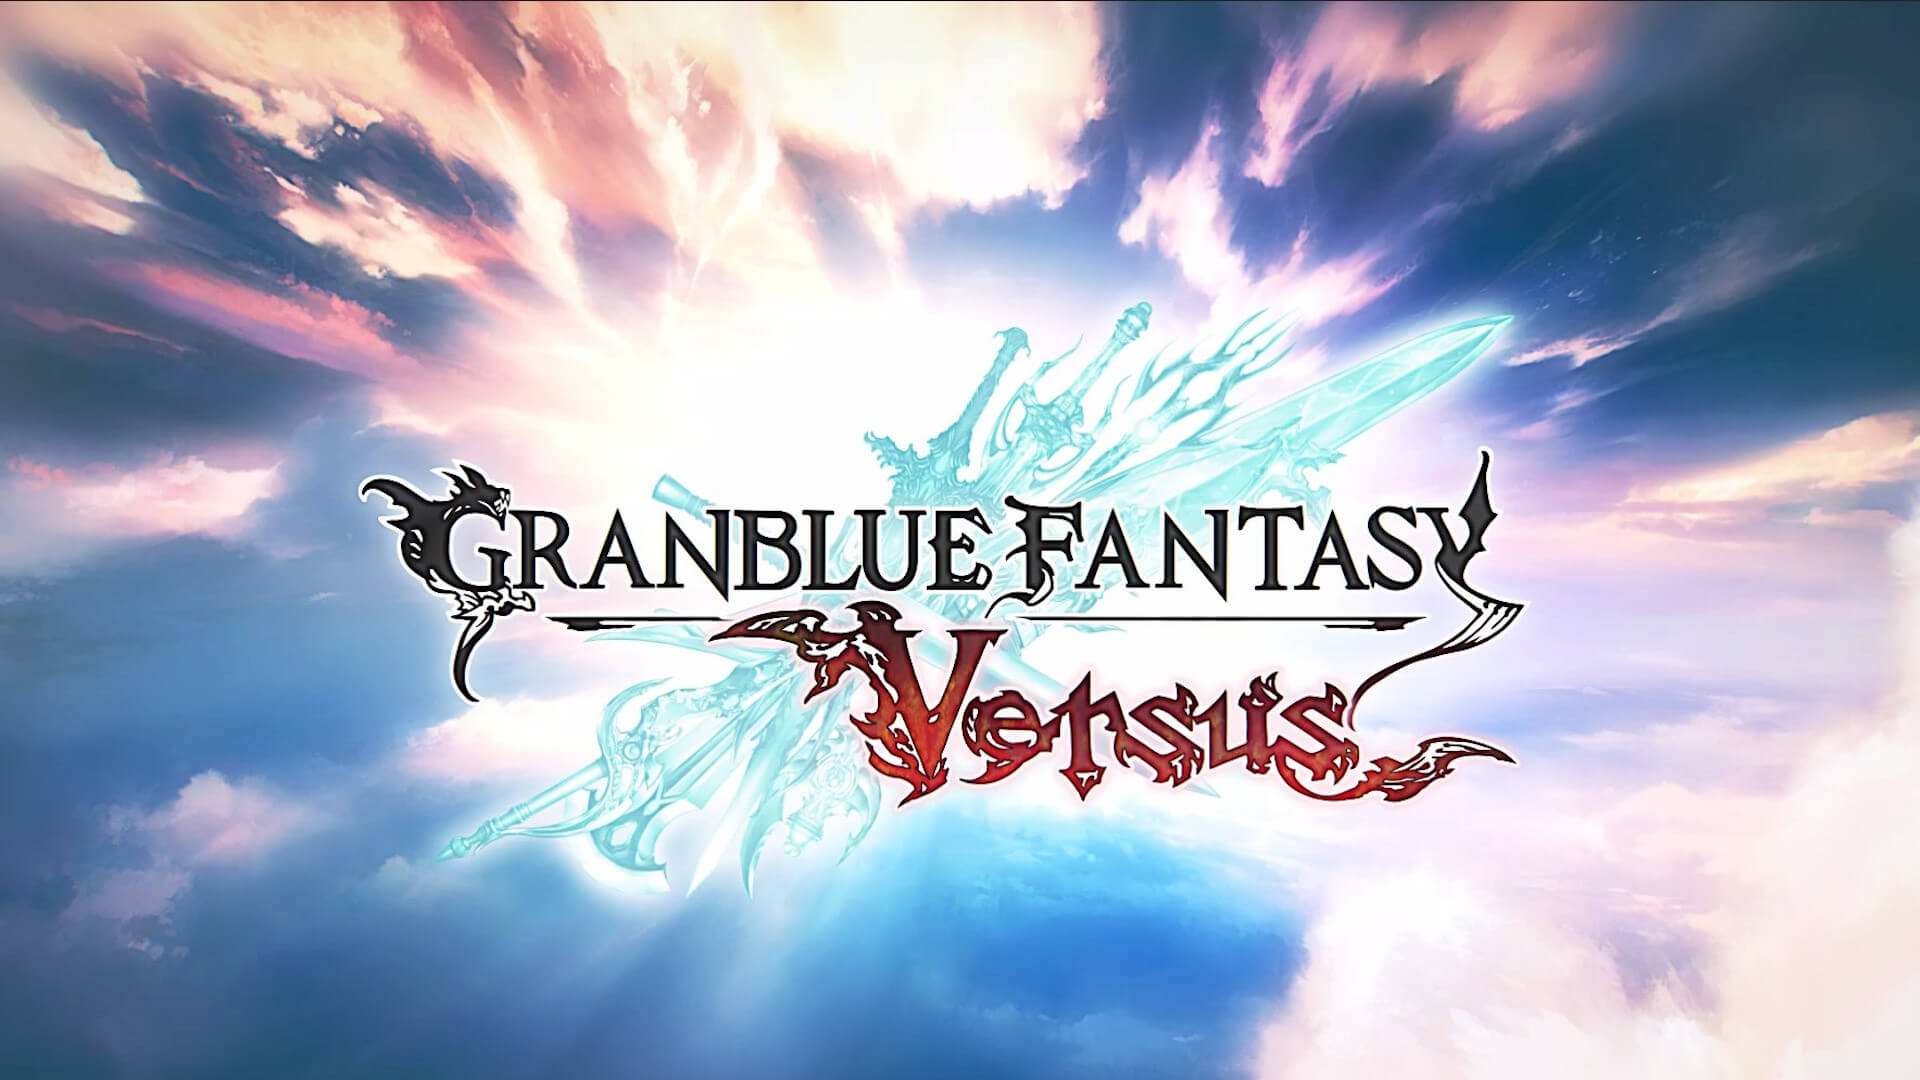 Granblue Fantasy Versus Review: Mechanically Fun, Otherwise Frustrating